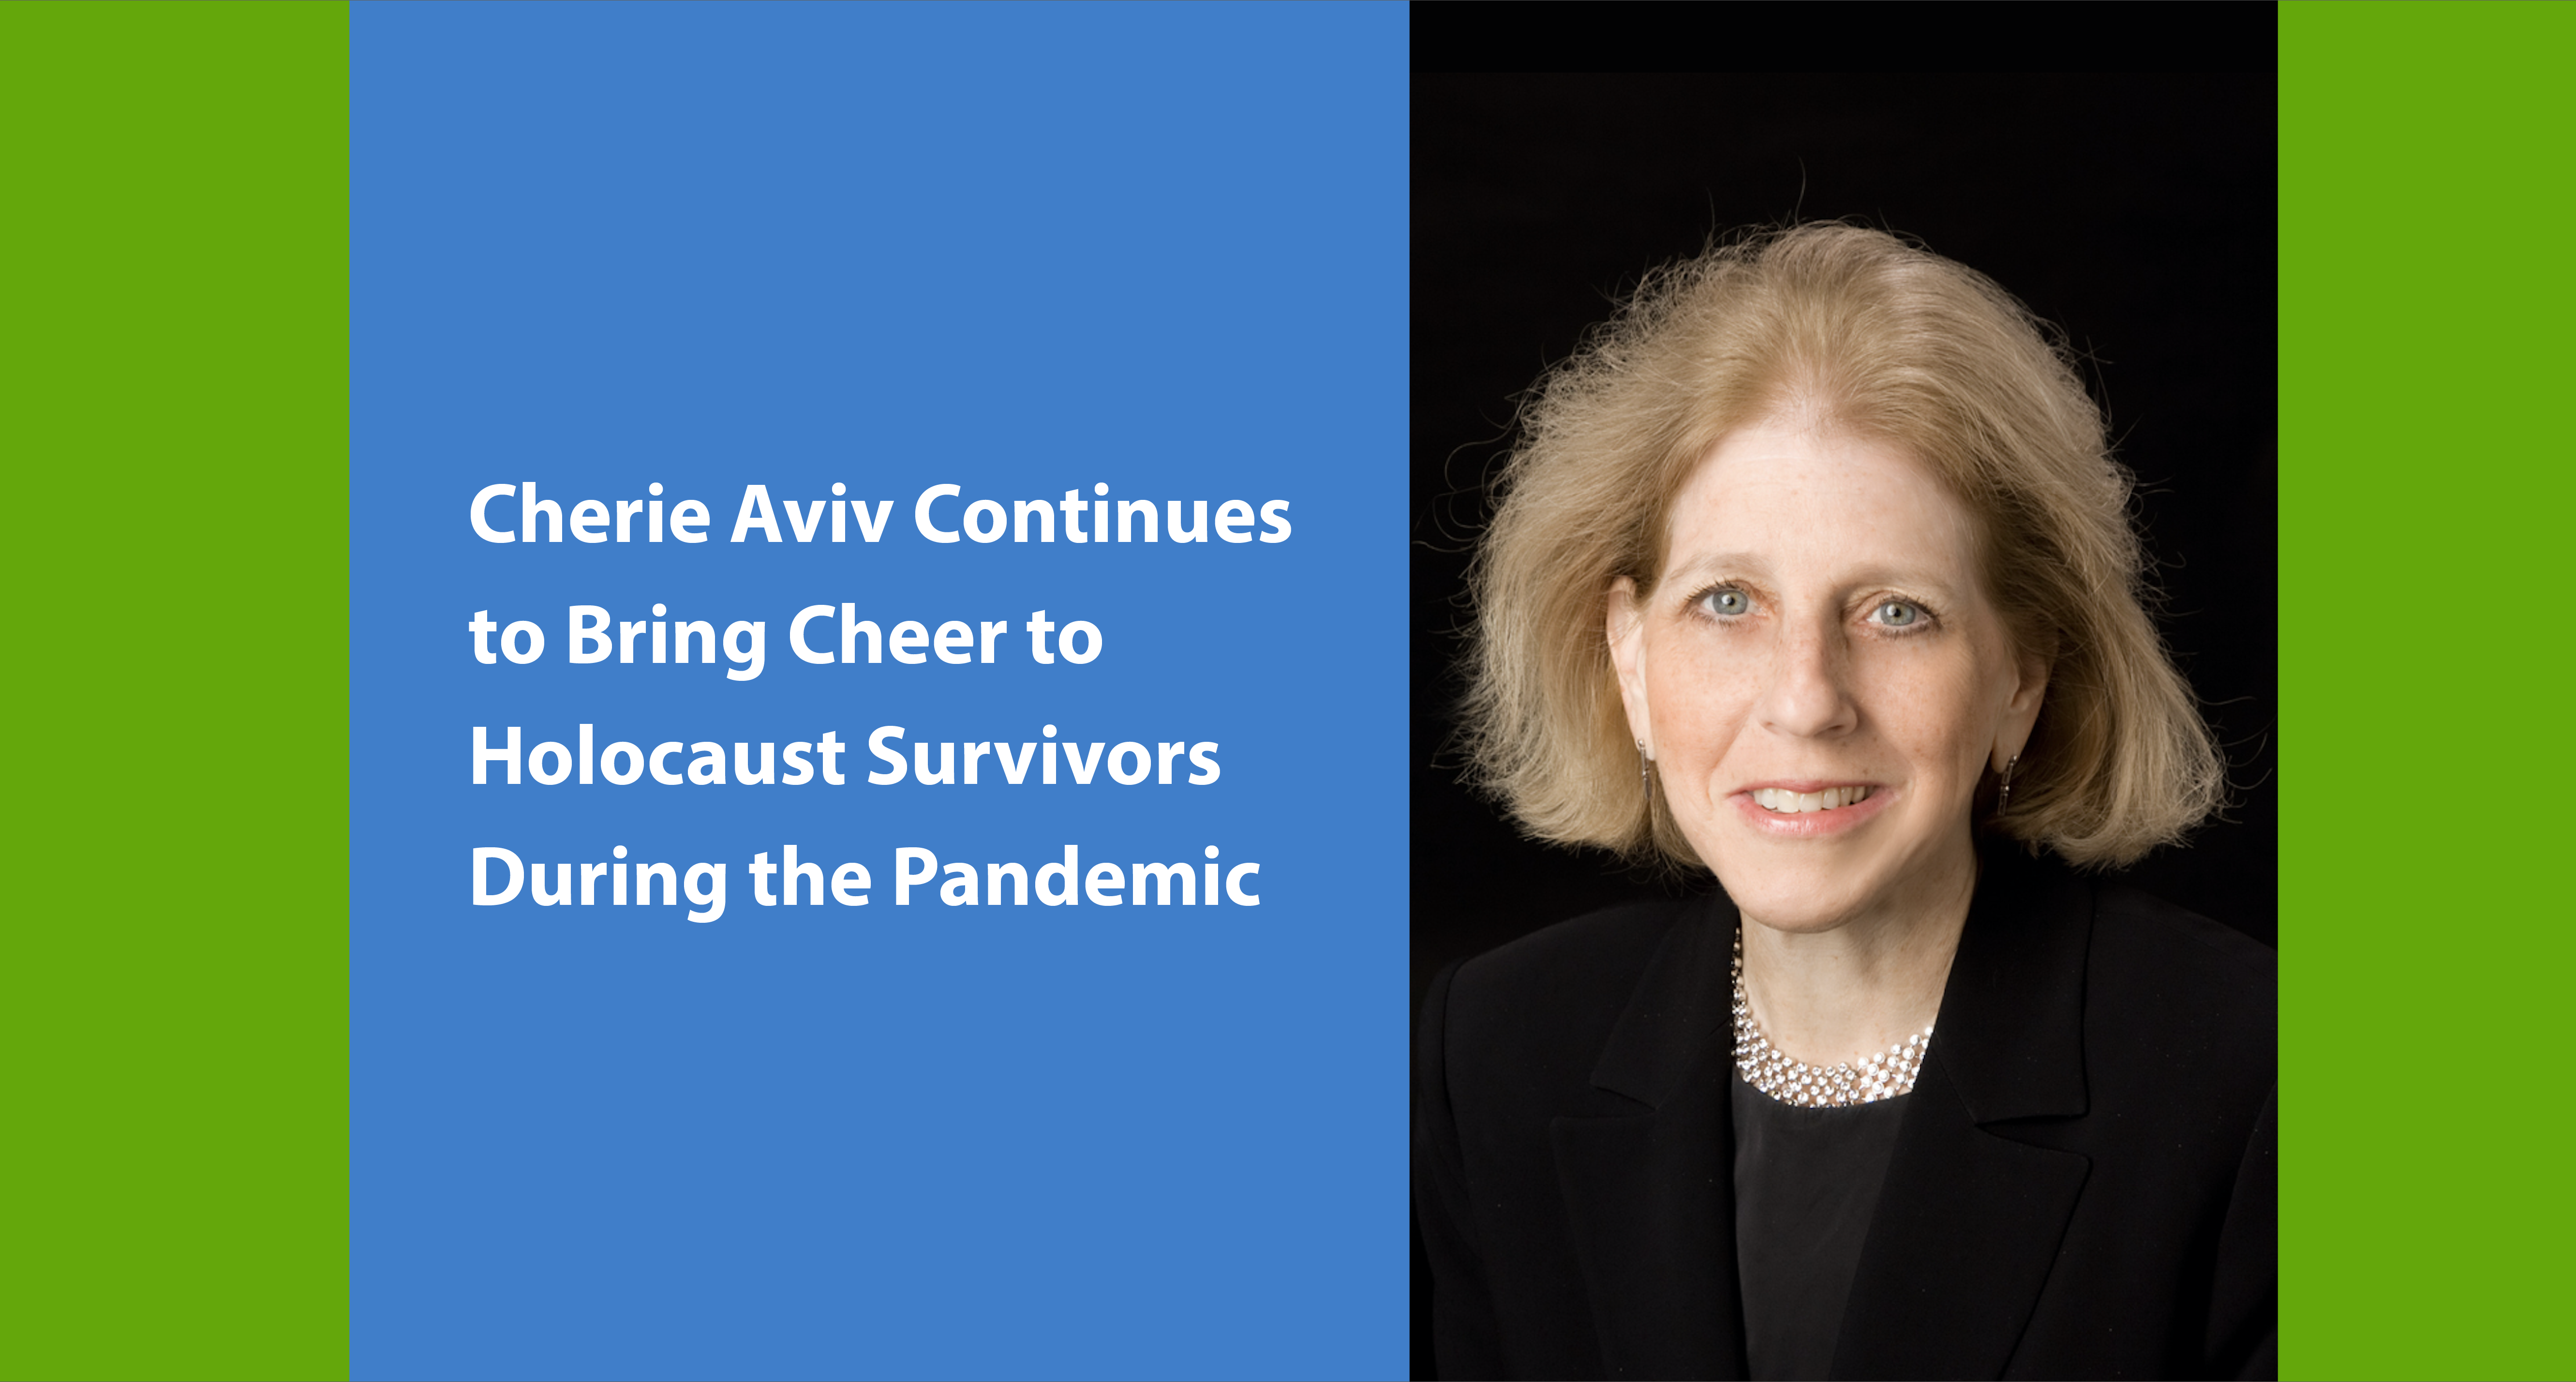 Cherie Aviv Continues to Bring Cheer to Holocaust Survivors Throughout the Pandemic